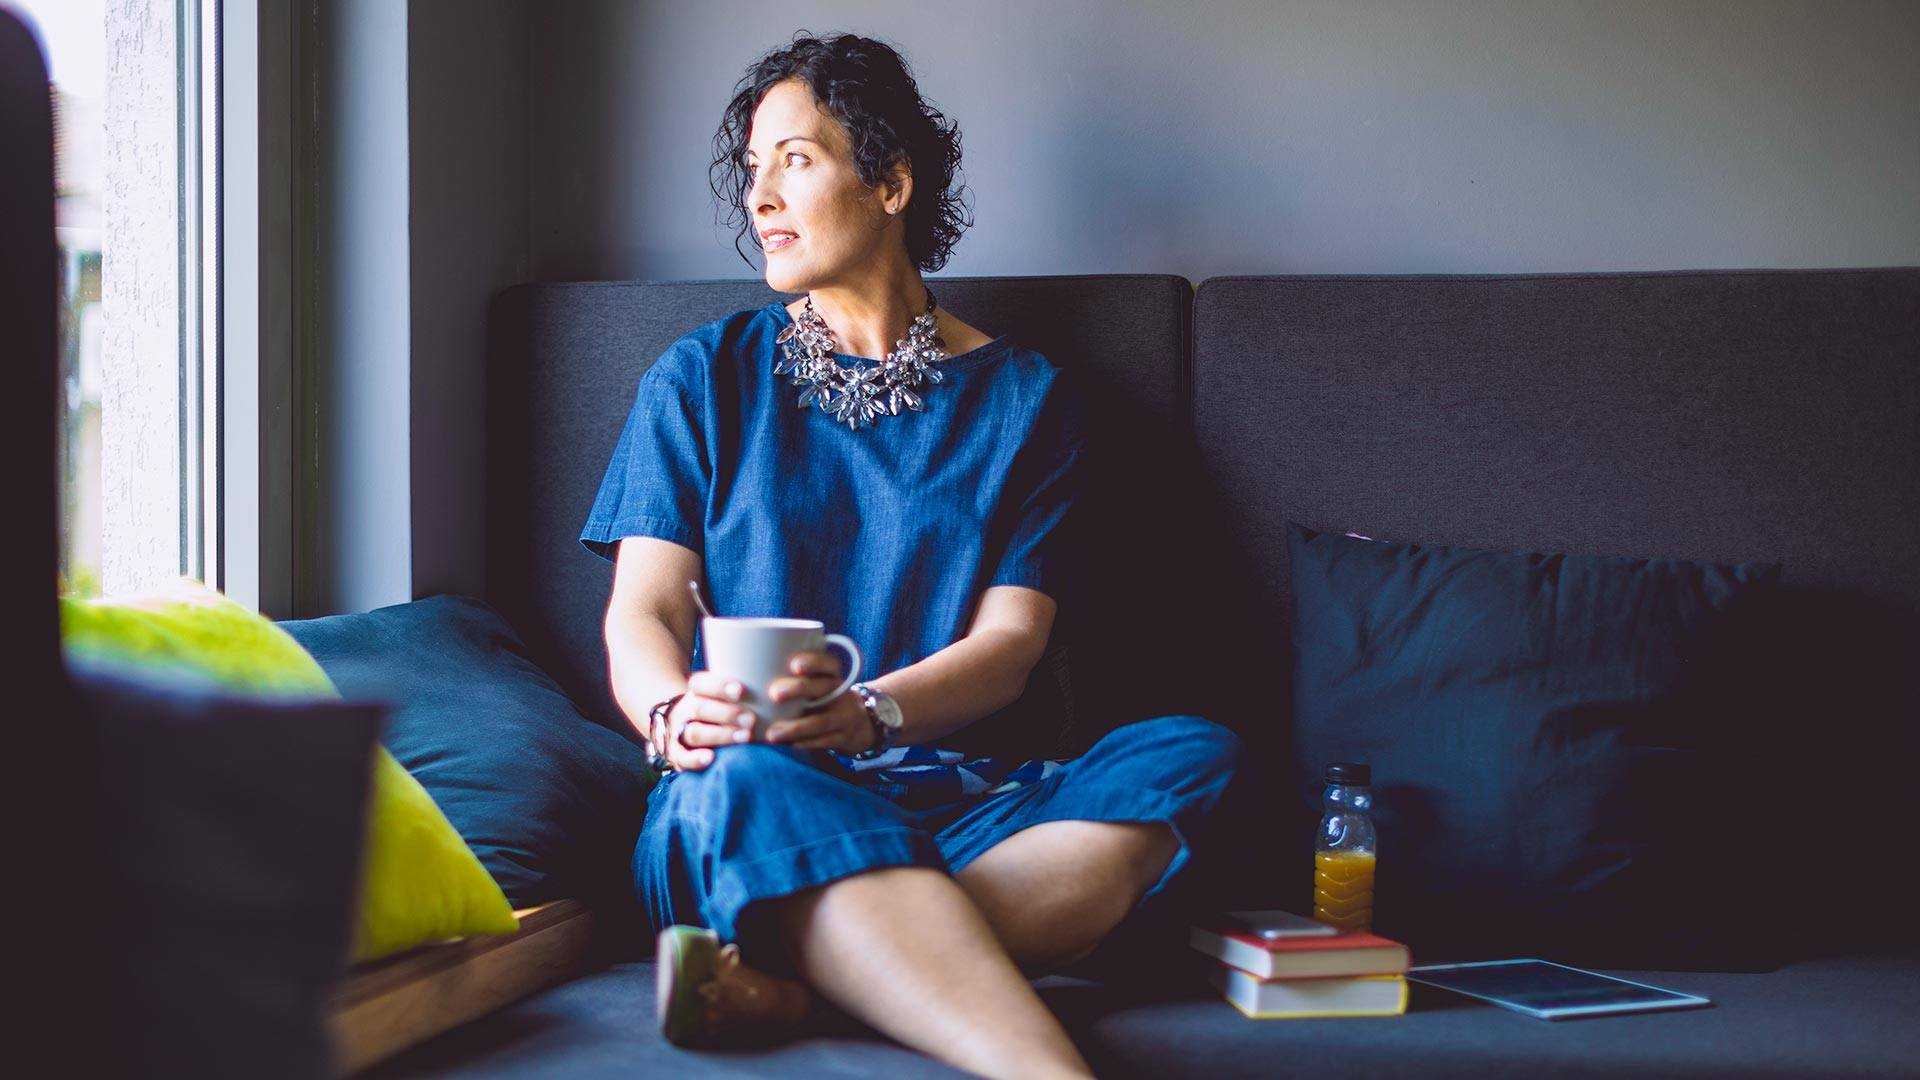 Does Having An Ovarian Cyst Mean I Have Cancer?